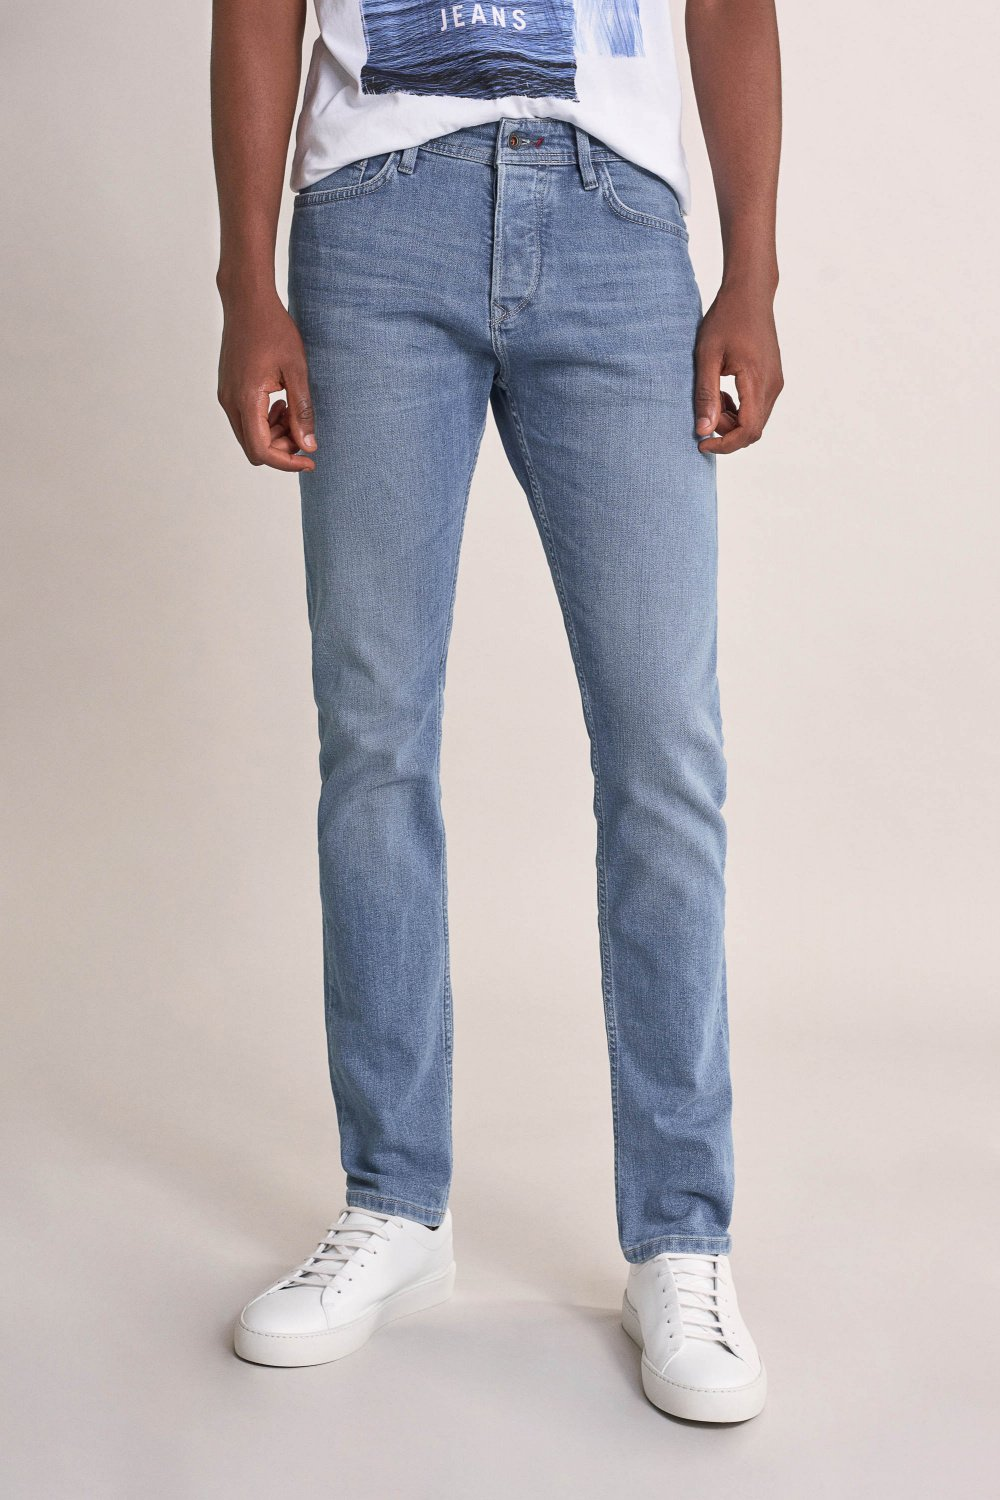 Jeans slender slim carrot ready to go - Salsa